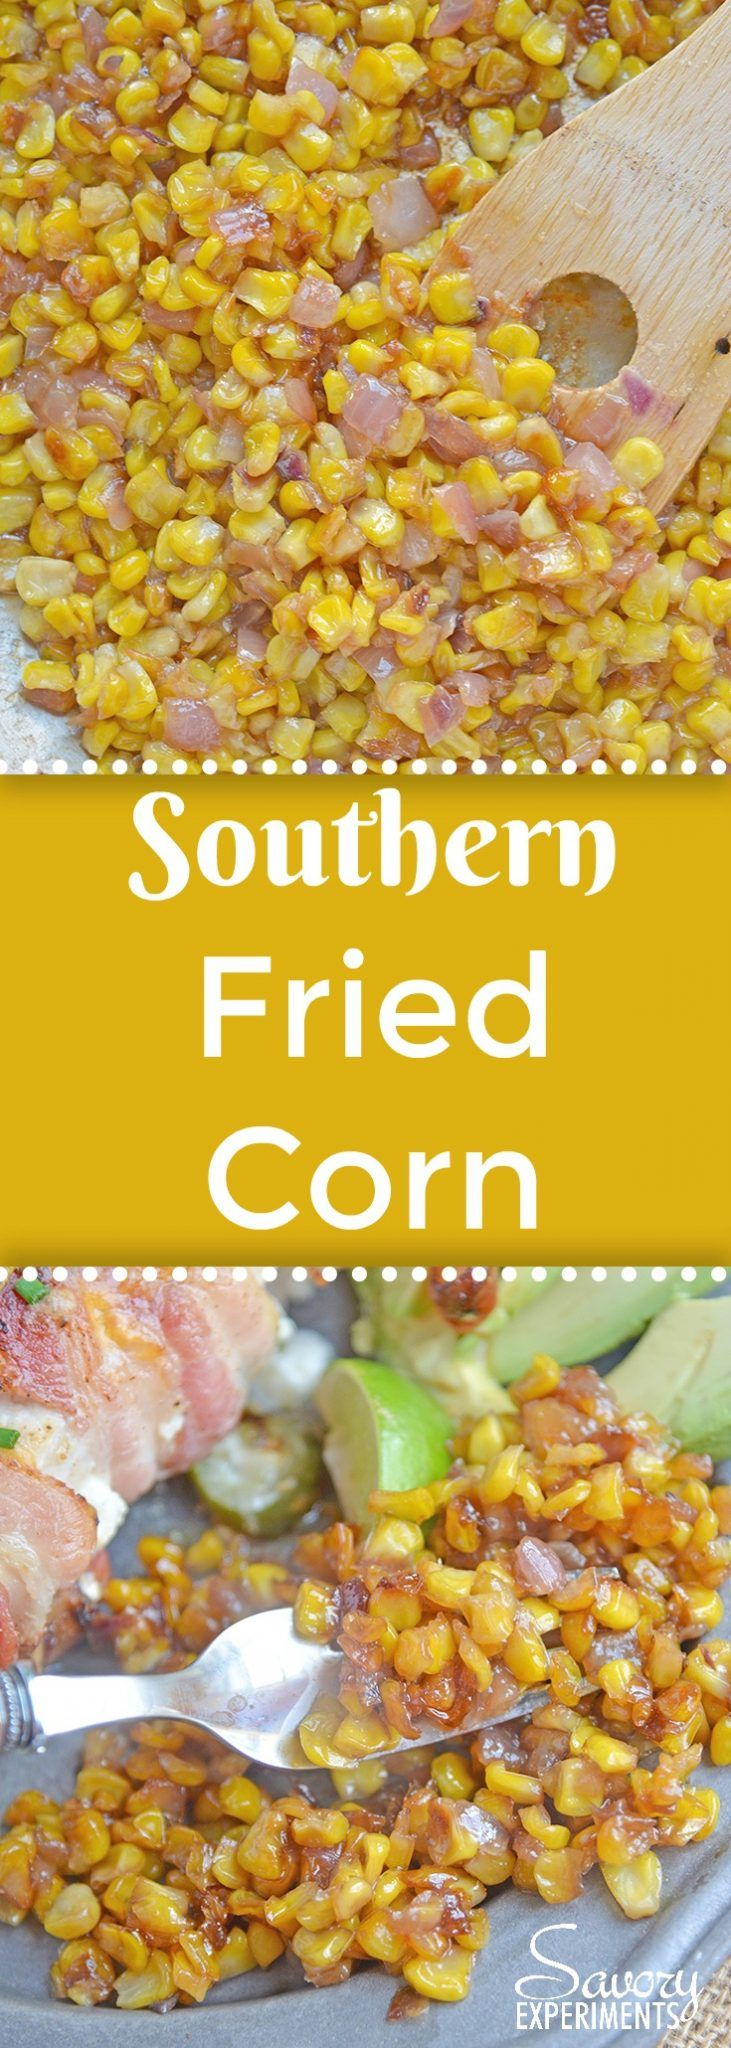 Southern Fried Corn is a simple southern recipe caramelizing corn and onions for a sweet side dish or taco filling! #friedcorn #cornrecipes #easysidedishes www.savoryexperiments.com